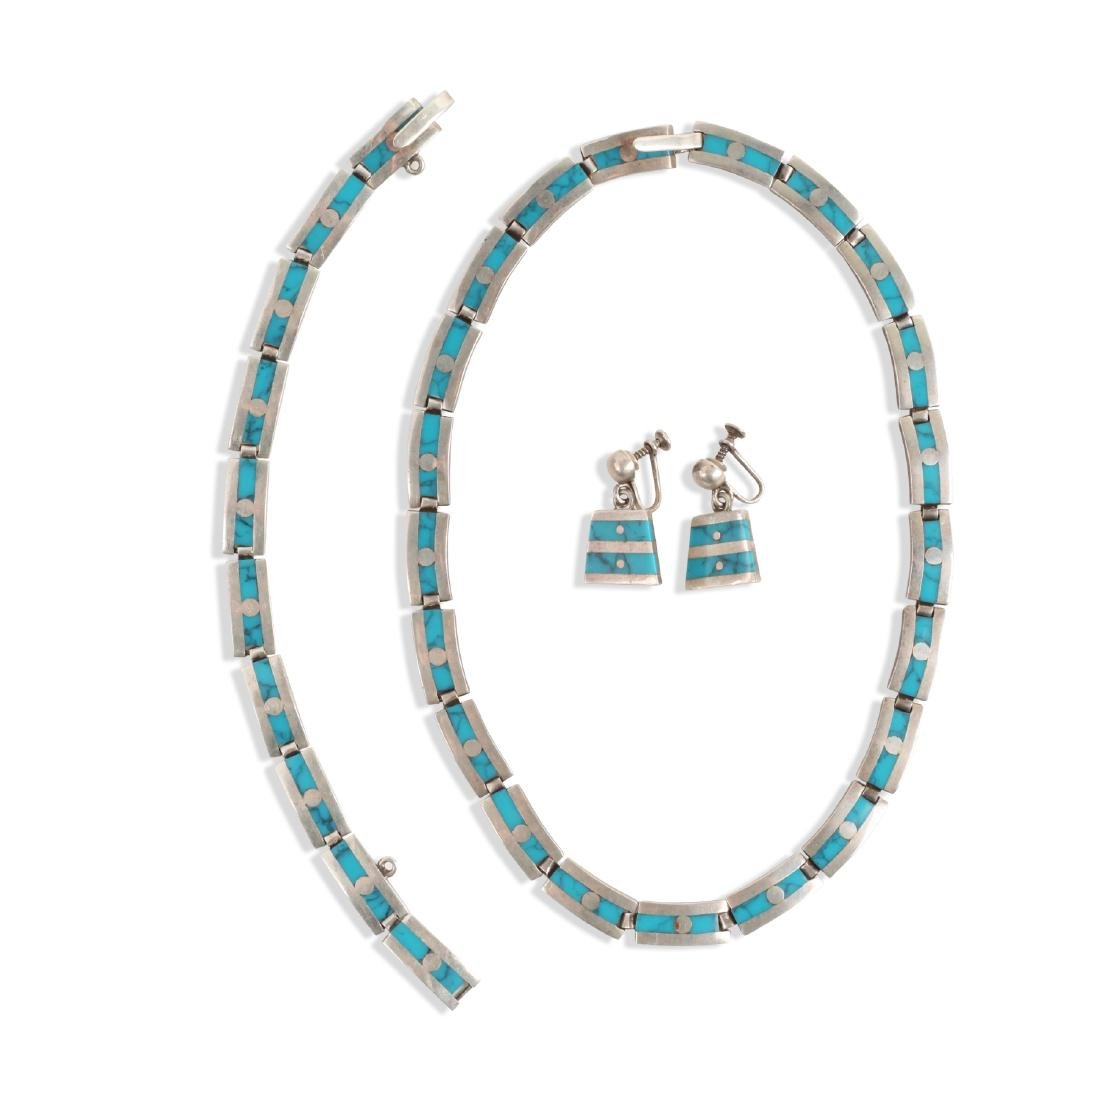 Emma Melendez Sterling Silver & Turquoise Accessories